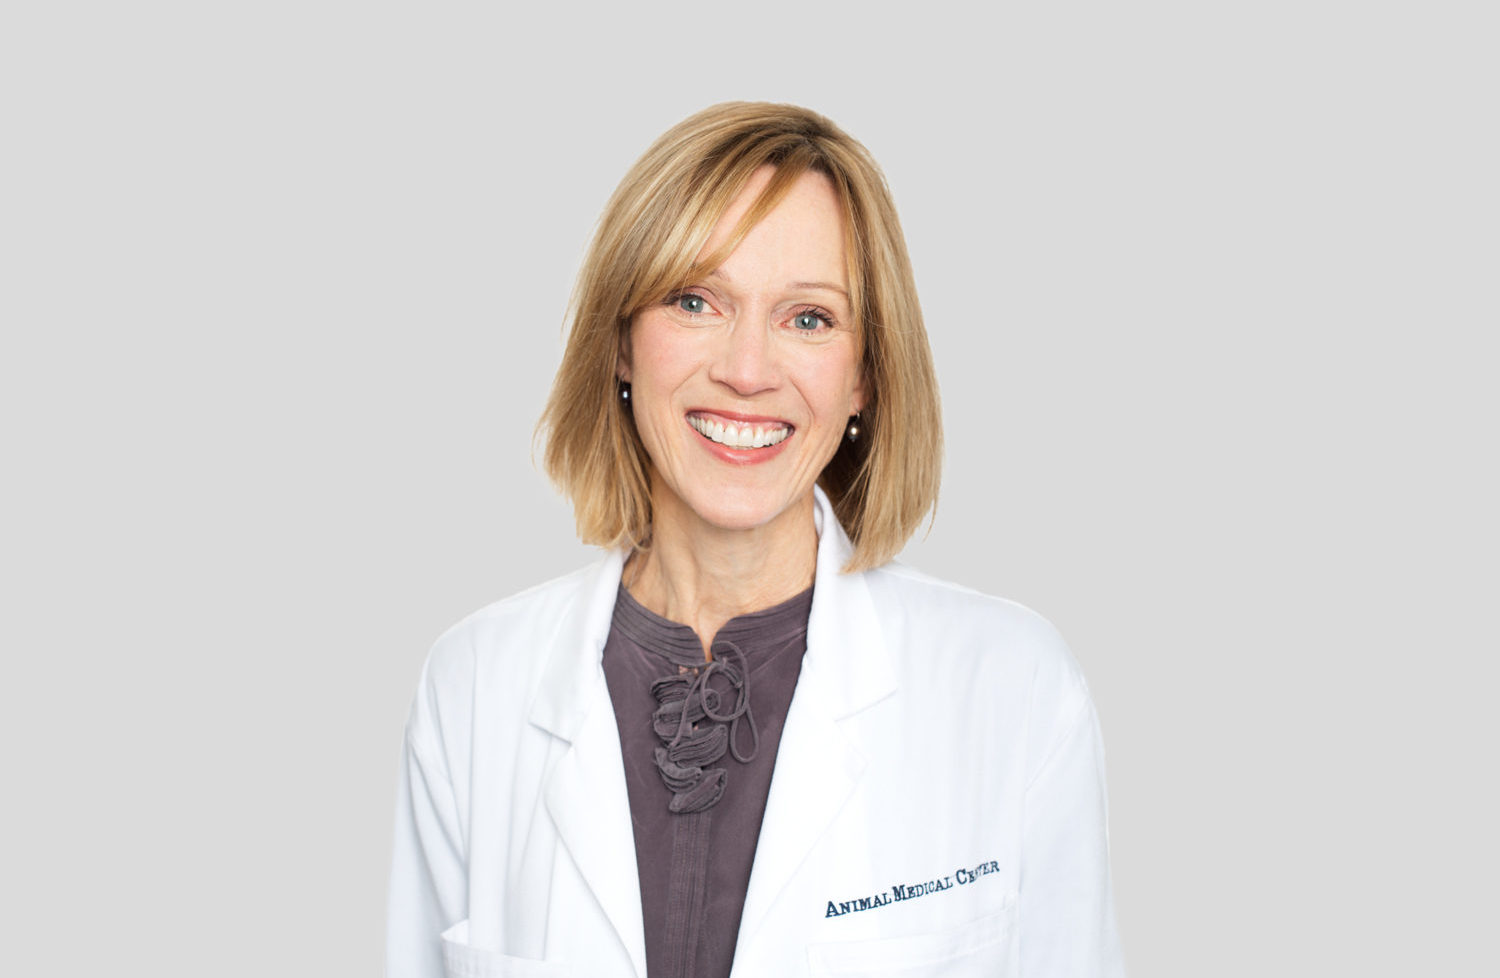 Dr. Katherine Quesenberry of the Animal Medical Center in New York City